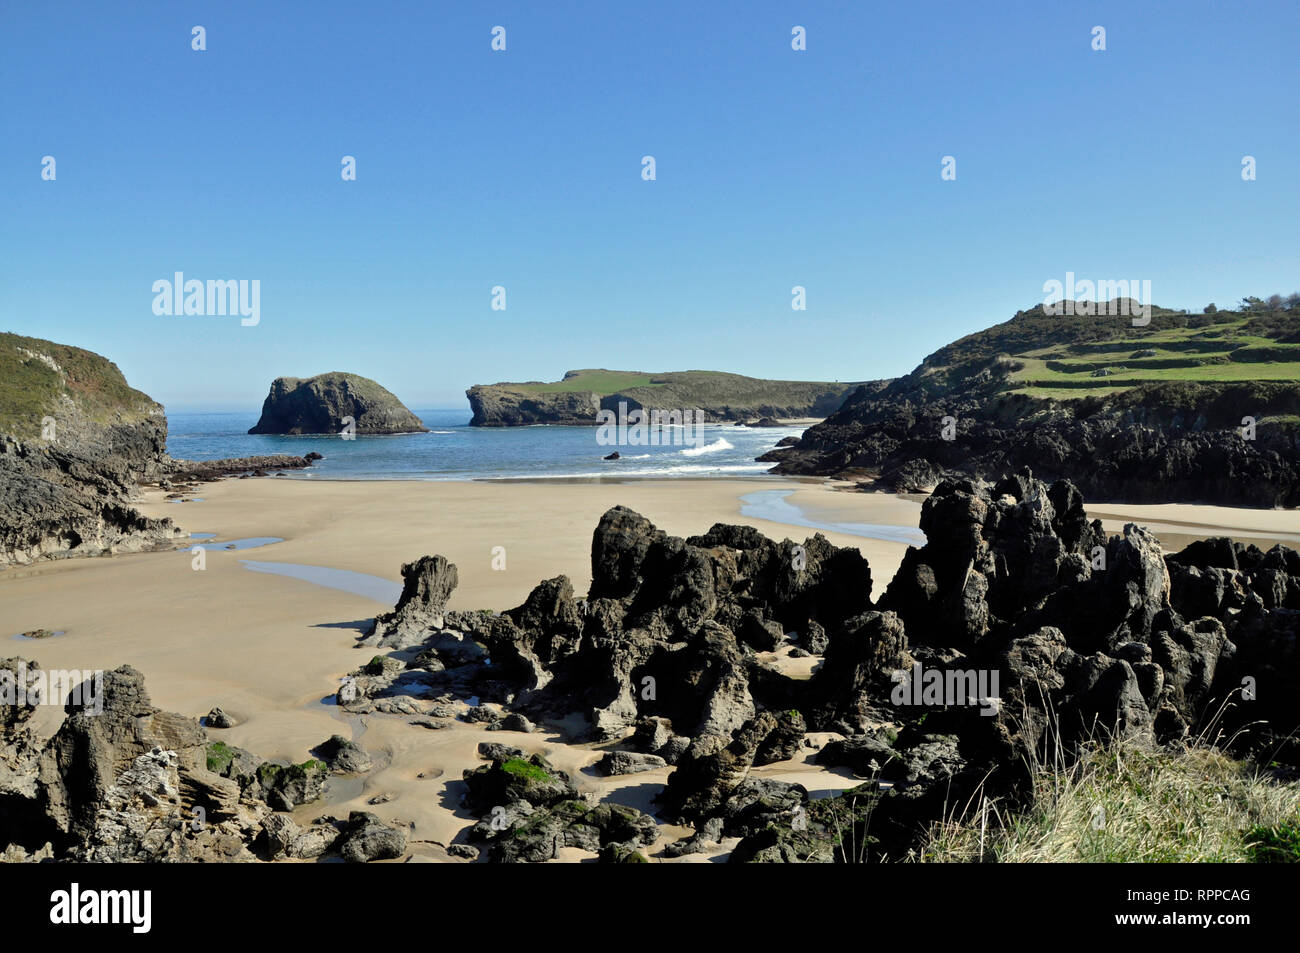 Playa de Barro on the Costa Verde near Llanes, Asturias, Spain. - Stock Image